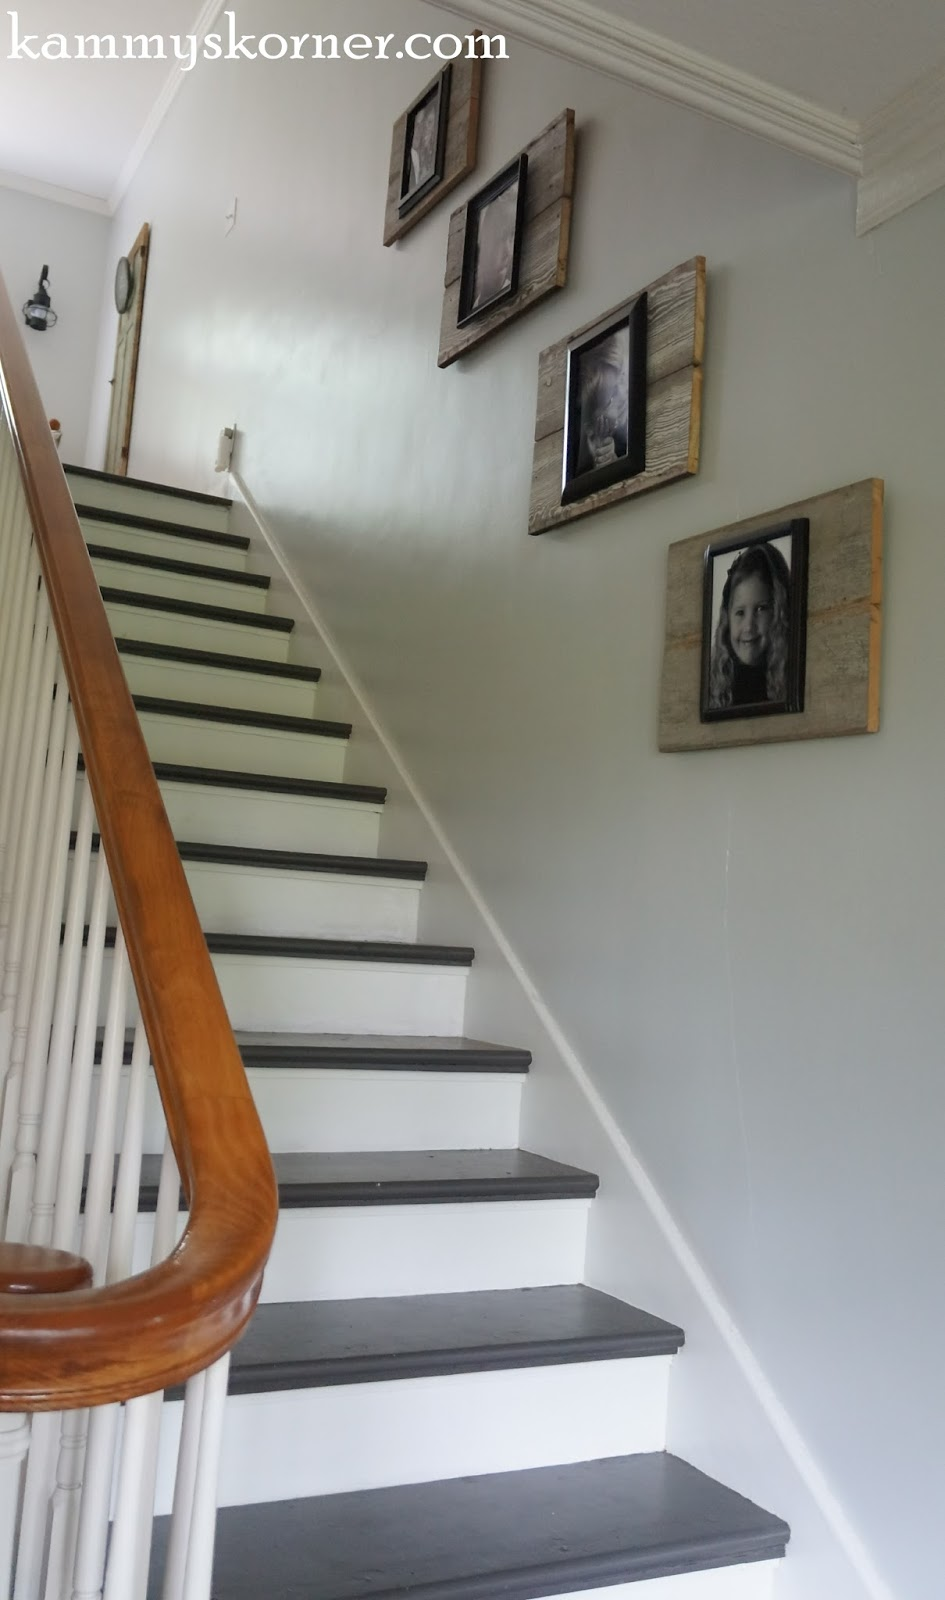 Kammy's Korner: Painting The Stairs With DIY Chalk Paint